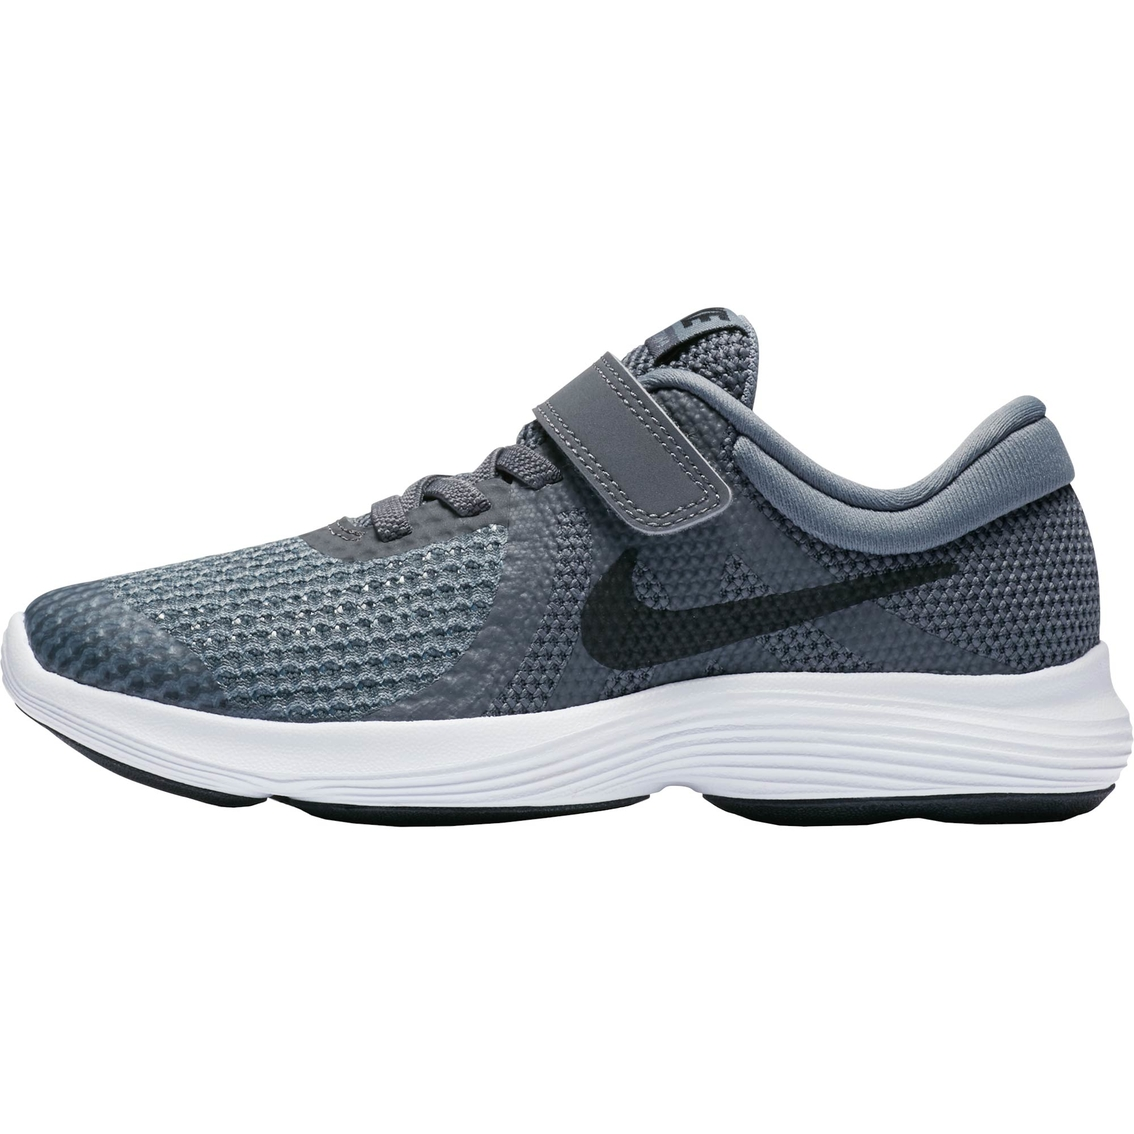 40a140fc76bd Nike Boys Revolutions 4 Pre School Running Shoes